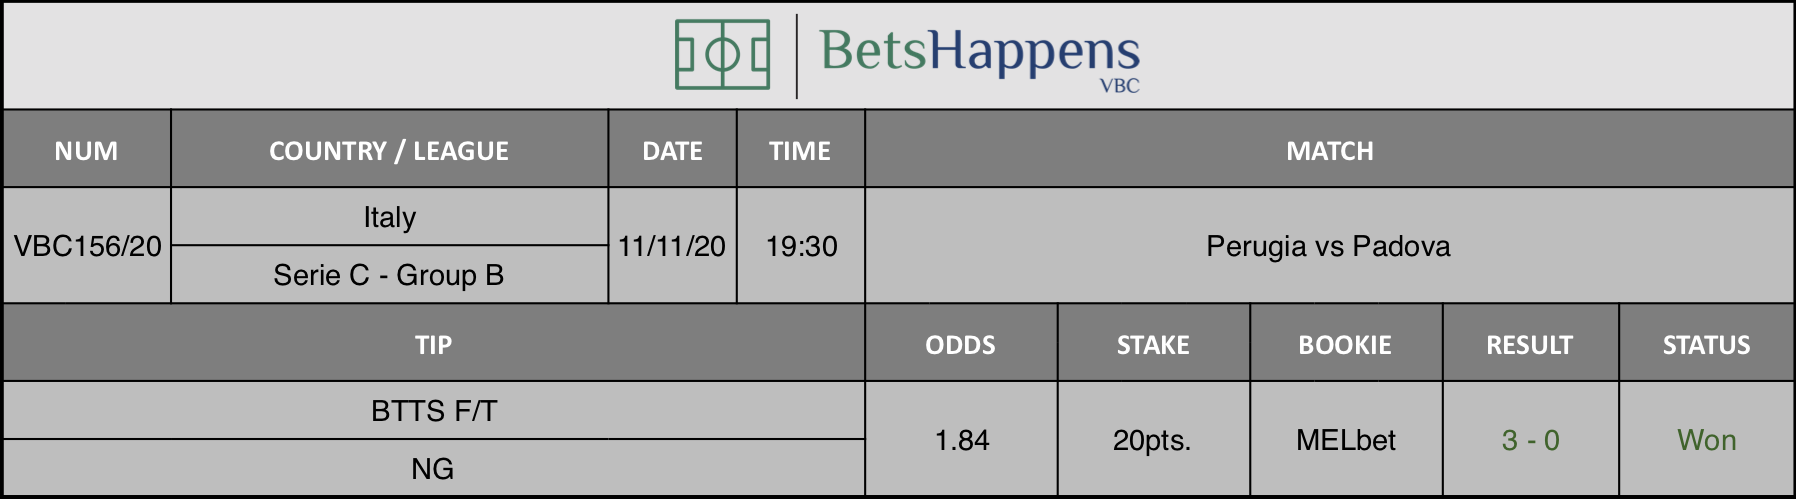 Results of our tip for the Perugia vs Padova match where BTTS F/T  NG is recommended.